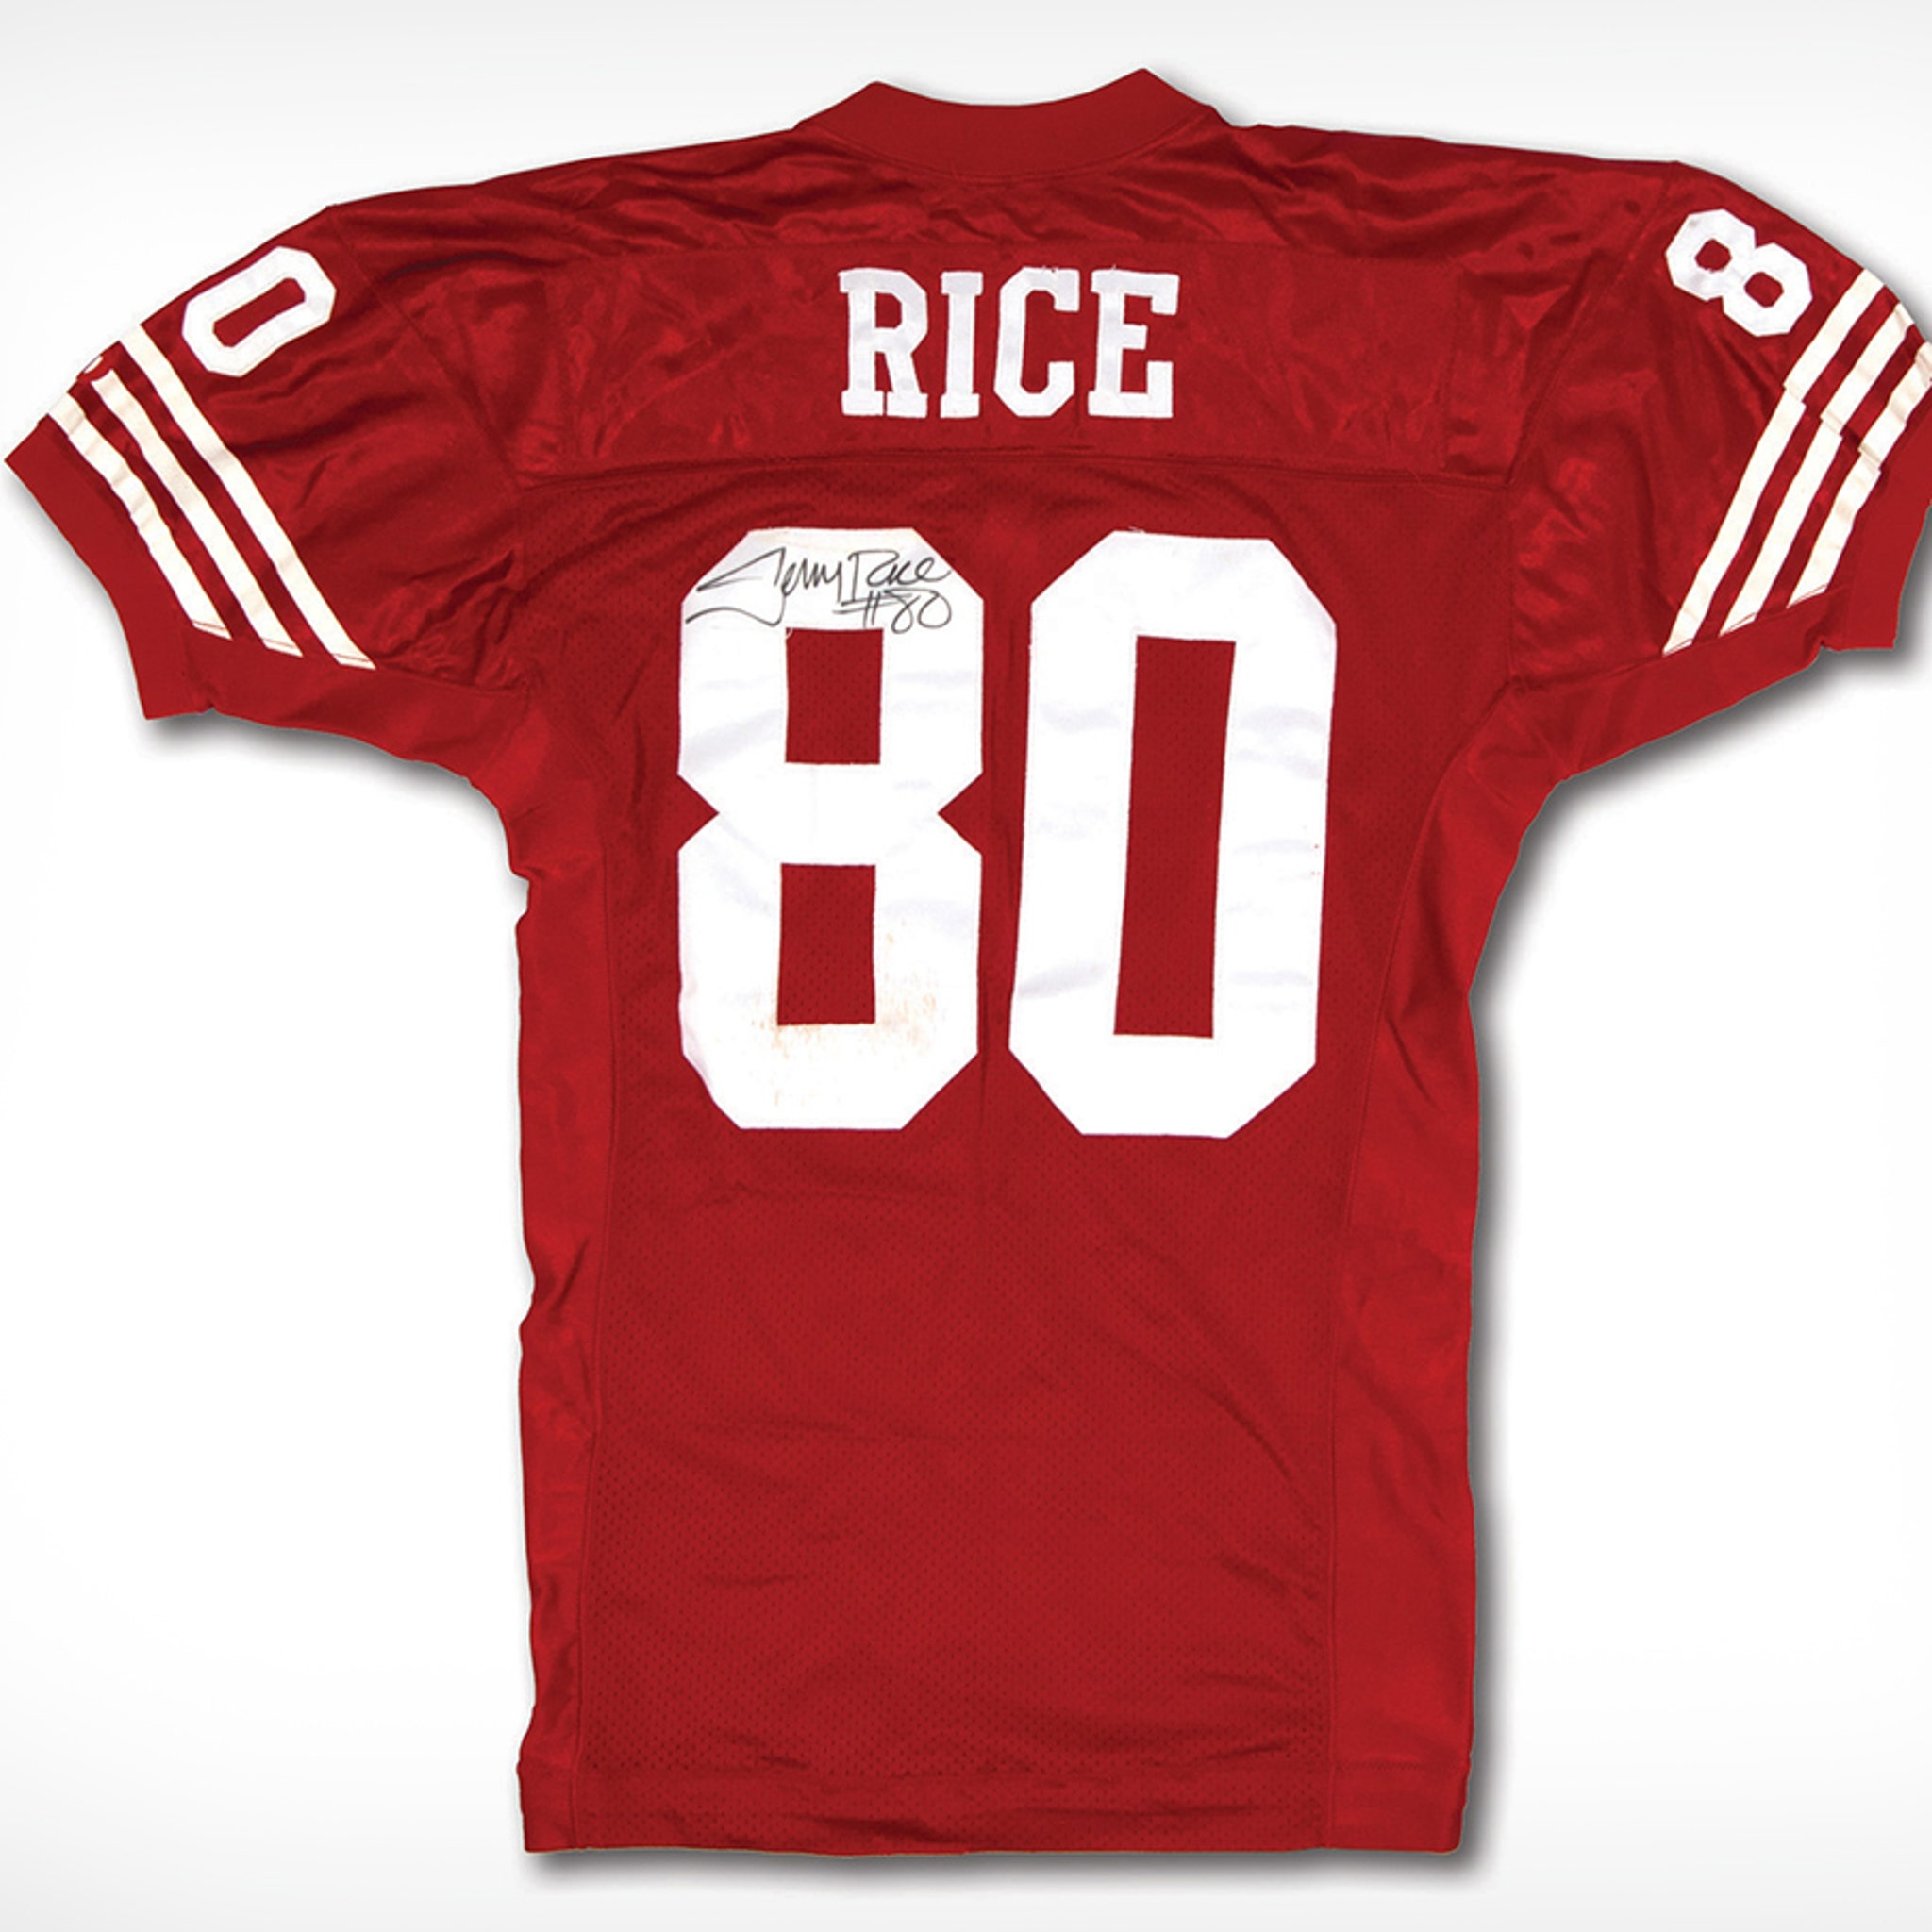 Jerry Rice Autographed Jersey Hits Auction, Last TD From Joe Montana Ever!